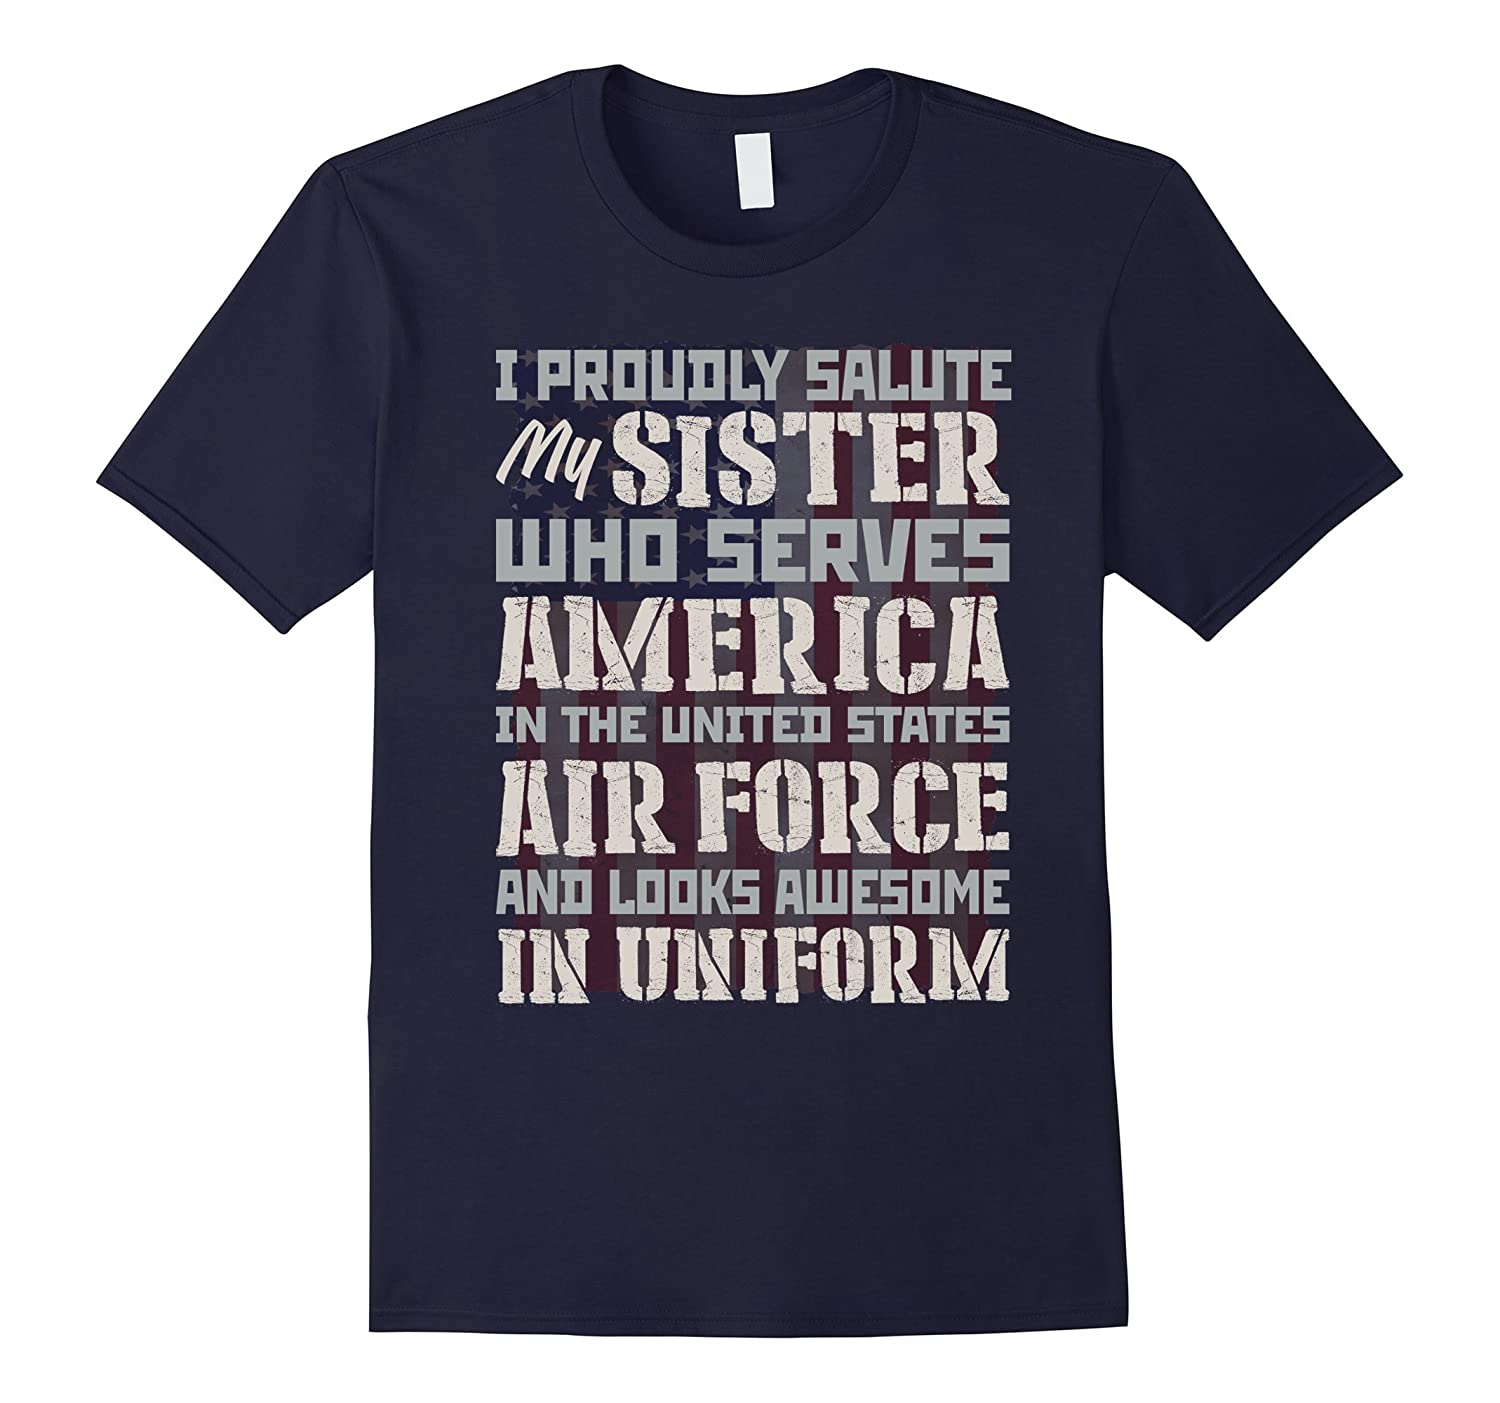 Air Force Sister Serves America and Looks Awesome in Uniform-CL